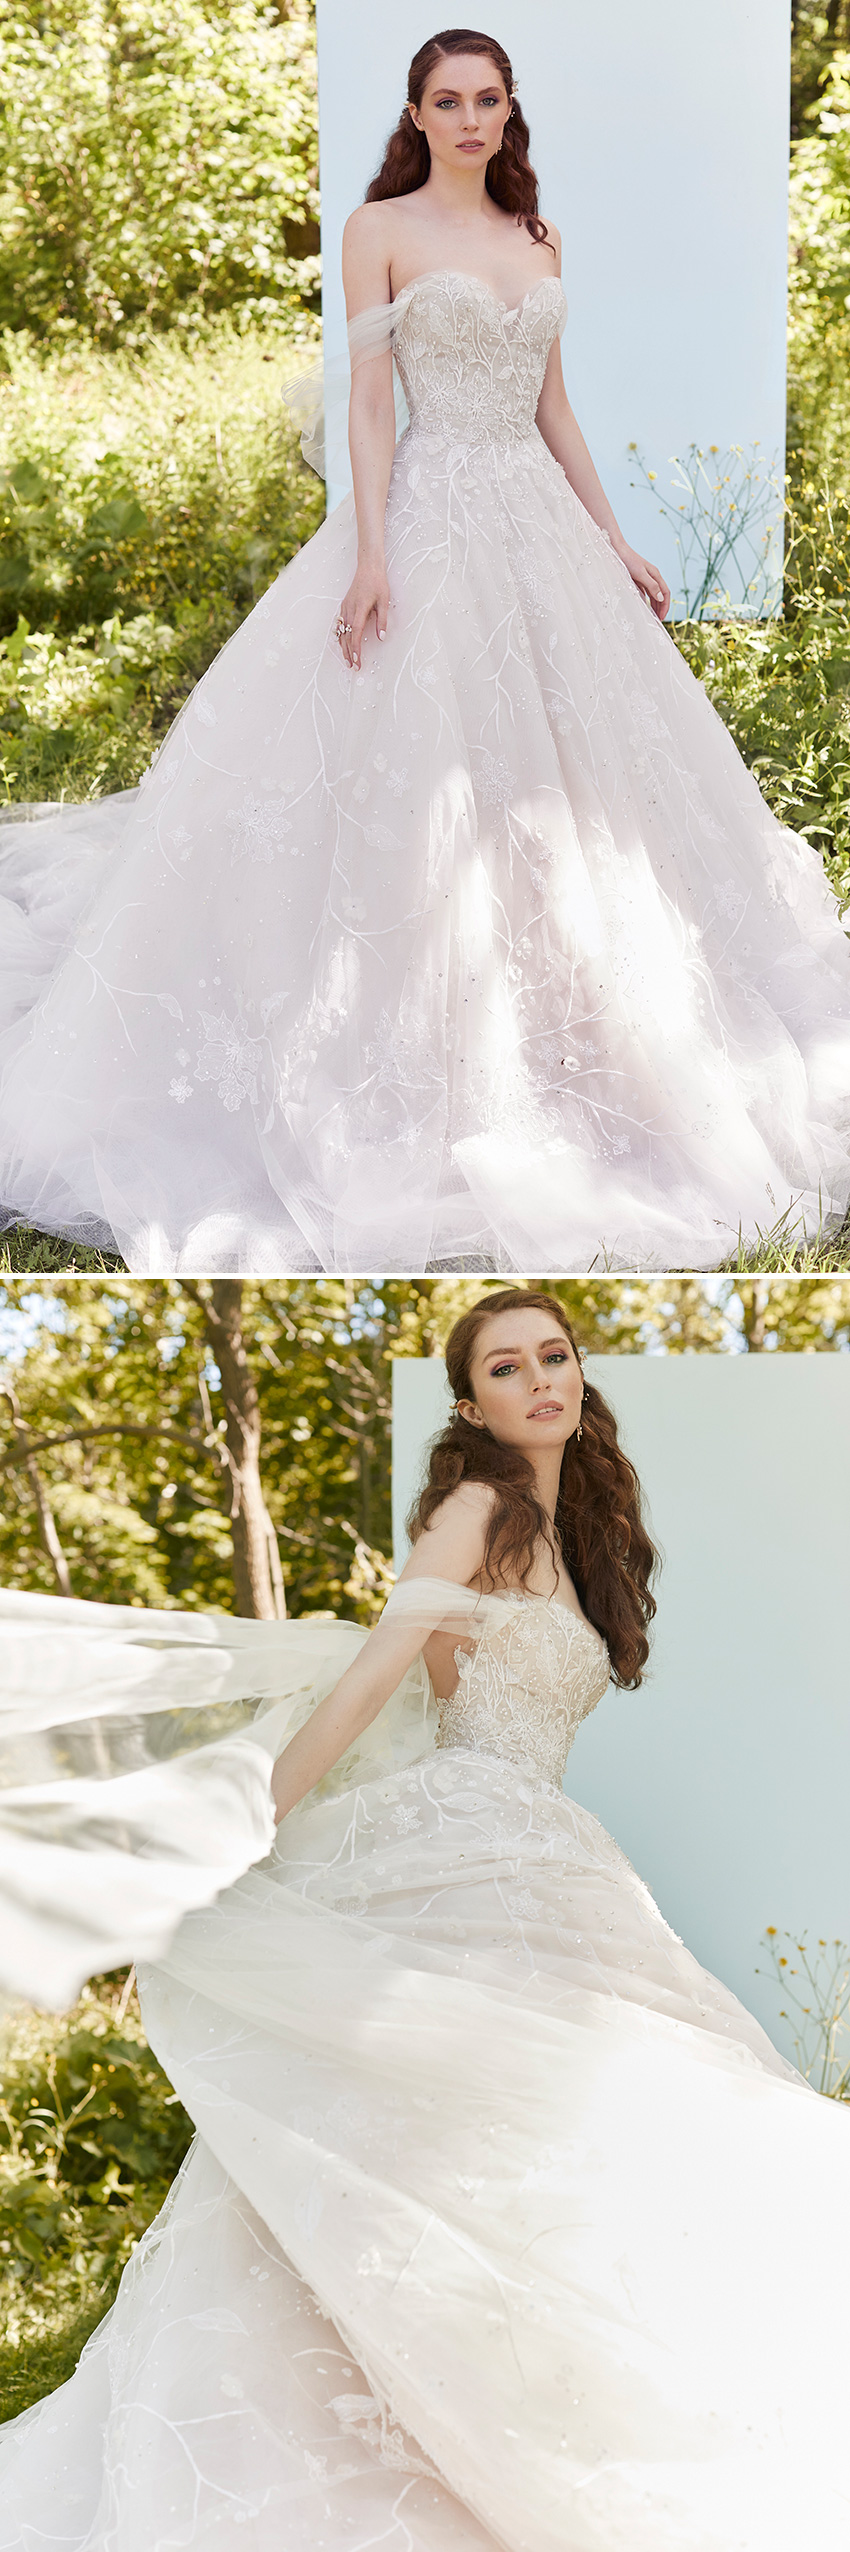 Ines Di Santo Spring 2021 Couture bridal collection includes hand embellishments as featured in Perfect Wedding Magazine